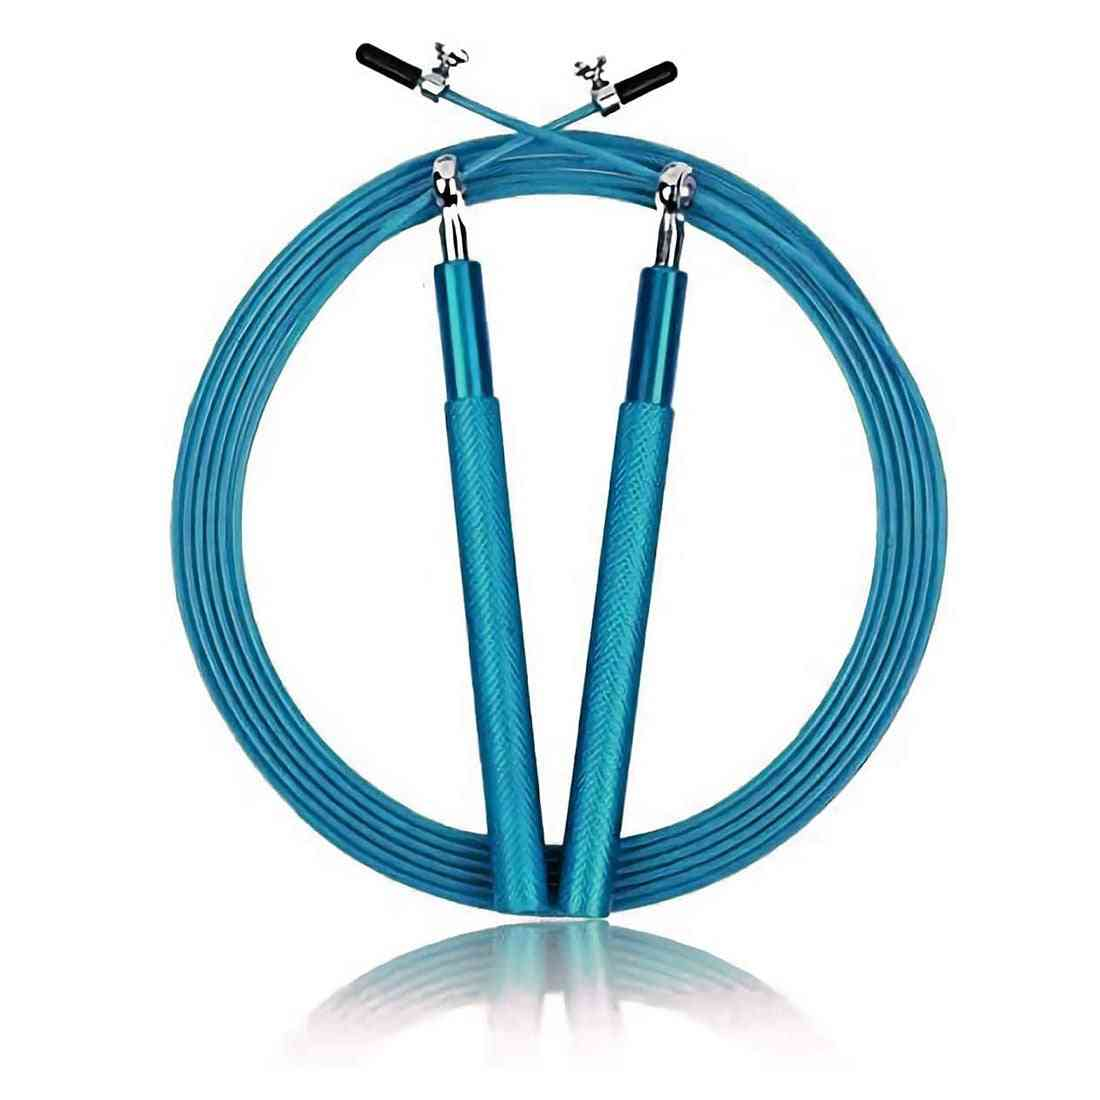 Bearing Skipping Jumping Rope, Men Workout Equipment, Steel Wire, Home, Gym Exercise And Fitness